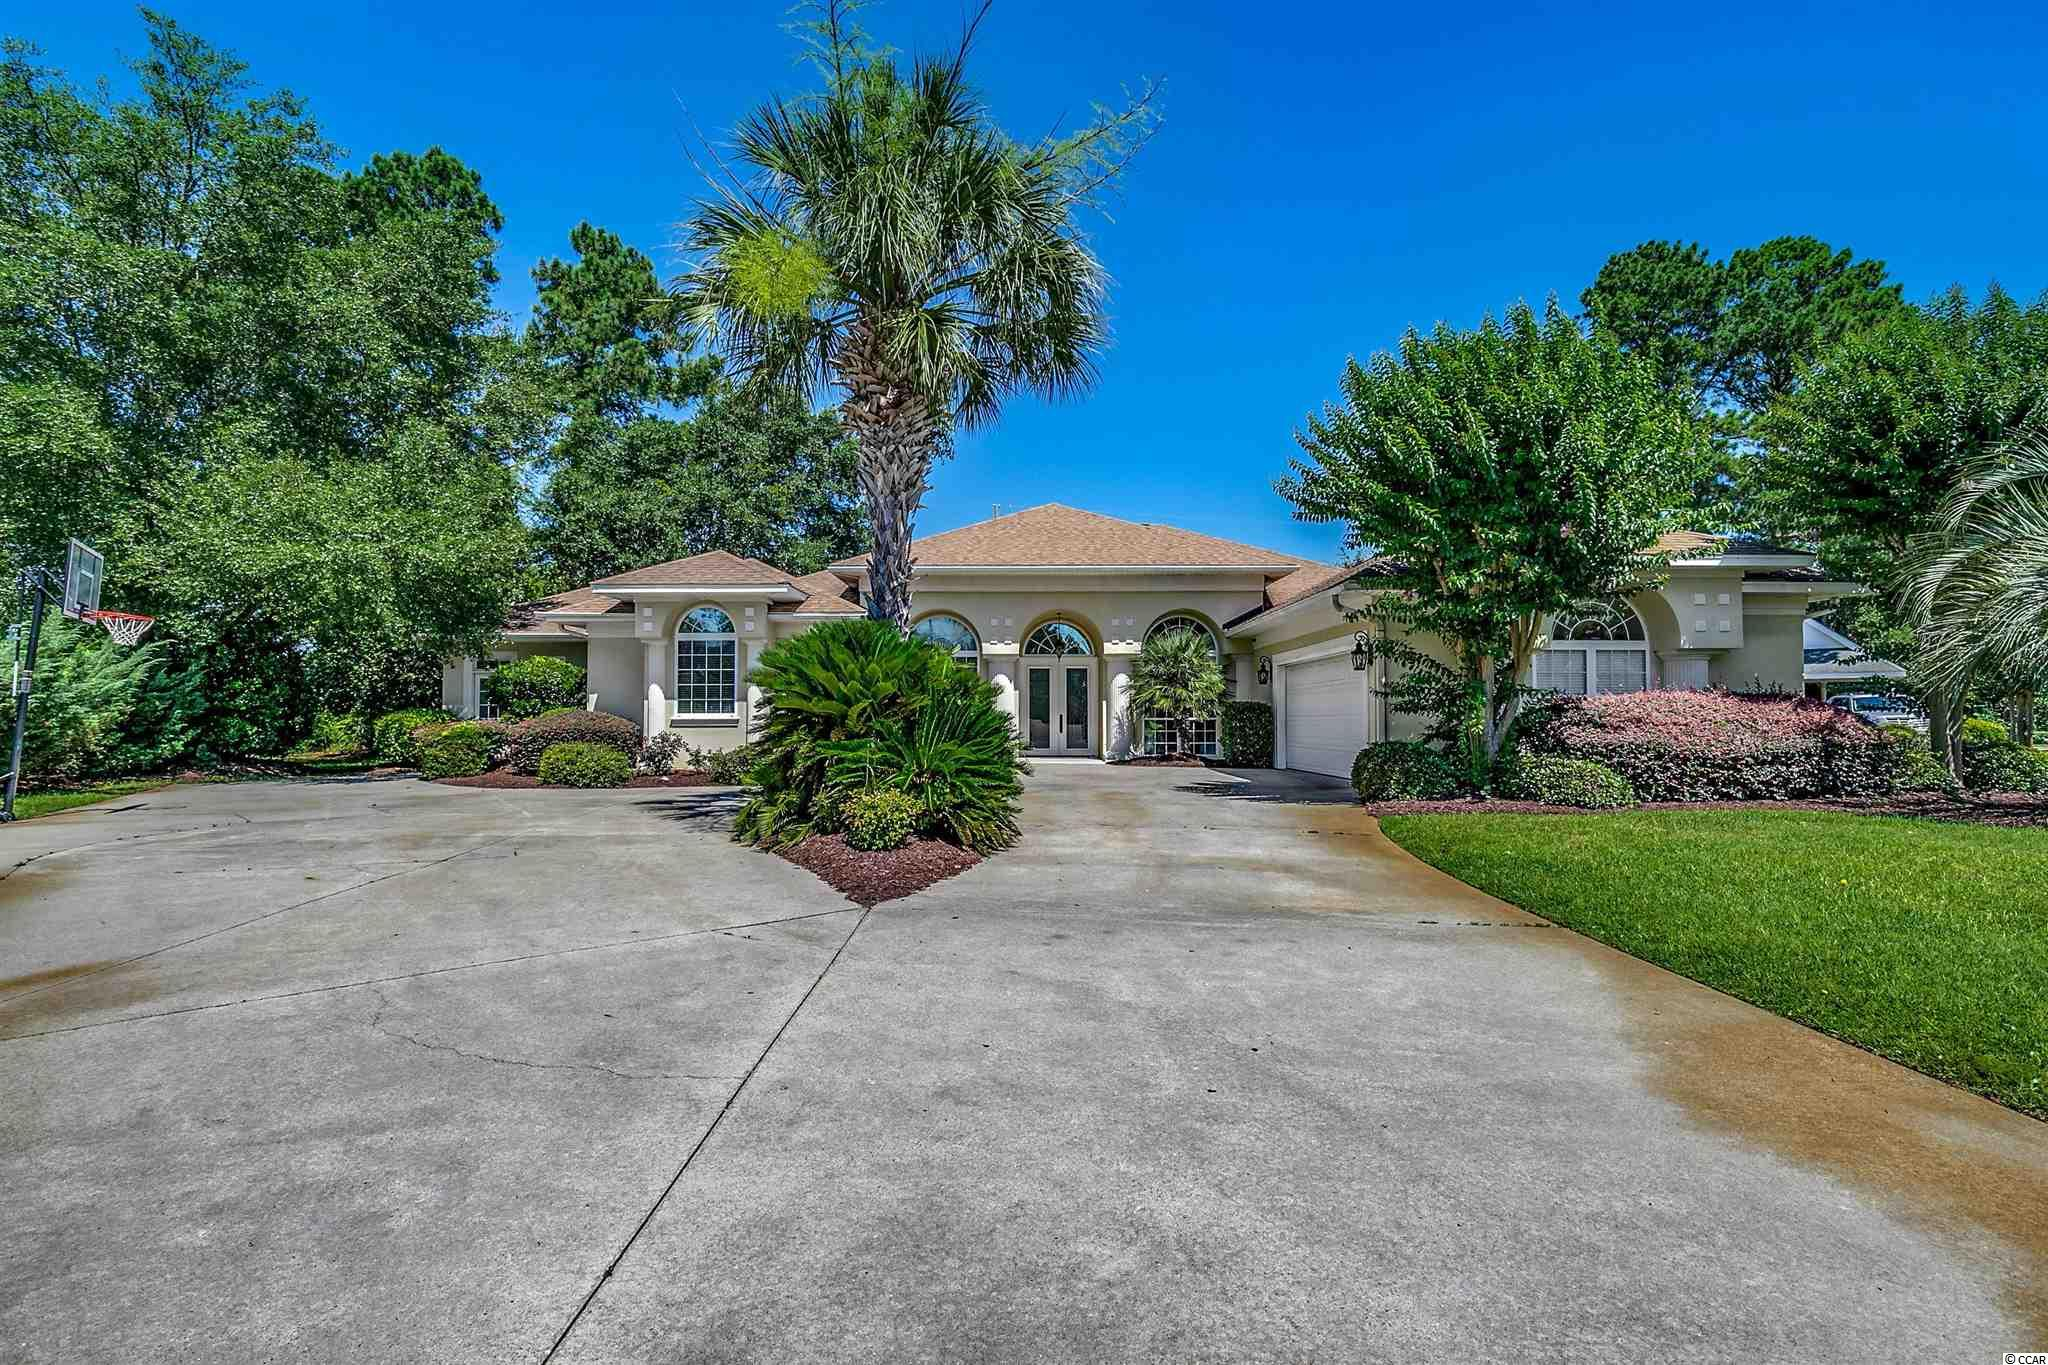 This beautiful Mediterranean home is located in one of Myrtle Beach's most prestigious neighborhood Dunes Cove connecting to the famous Dunes Beach and Golf Course. It has a huge Master suite and bath with custom made closets. It also has a formal dining room and a eat in kitchen with a breakfast bar. A family room off the kitchen with a fireplace. Great location close to the beach, shopping centers, theaters, restaurants, schools, doctors offices, hospitals, golf courses. Great location don't miss out on this one.